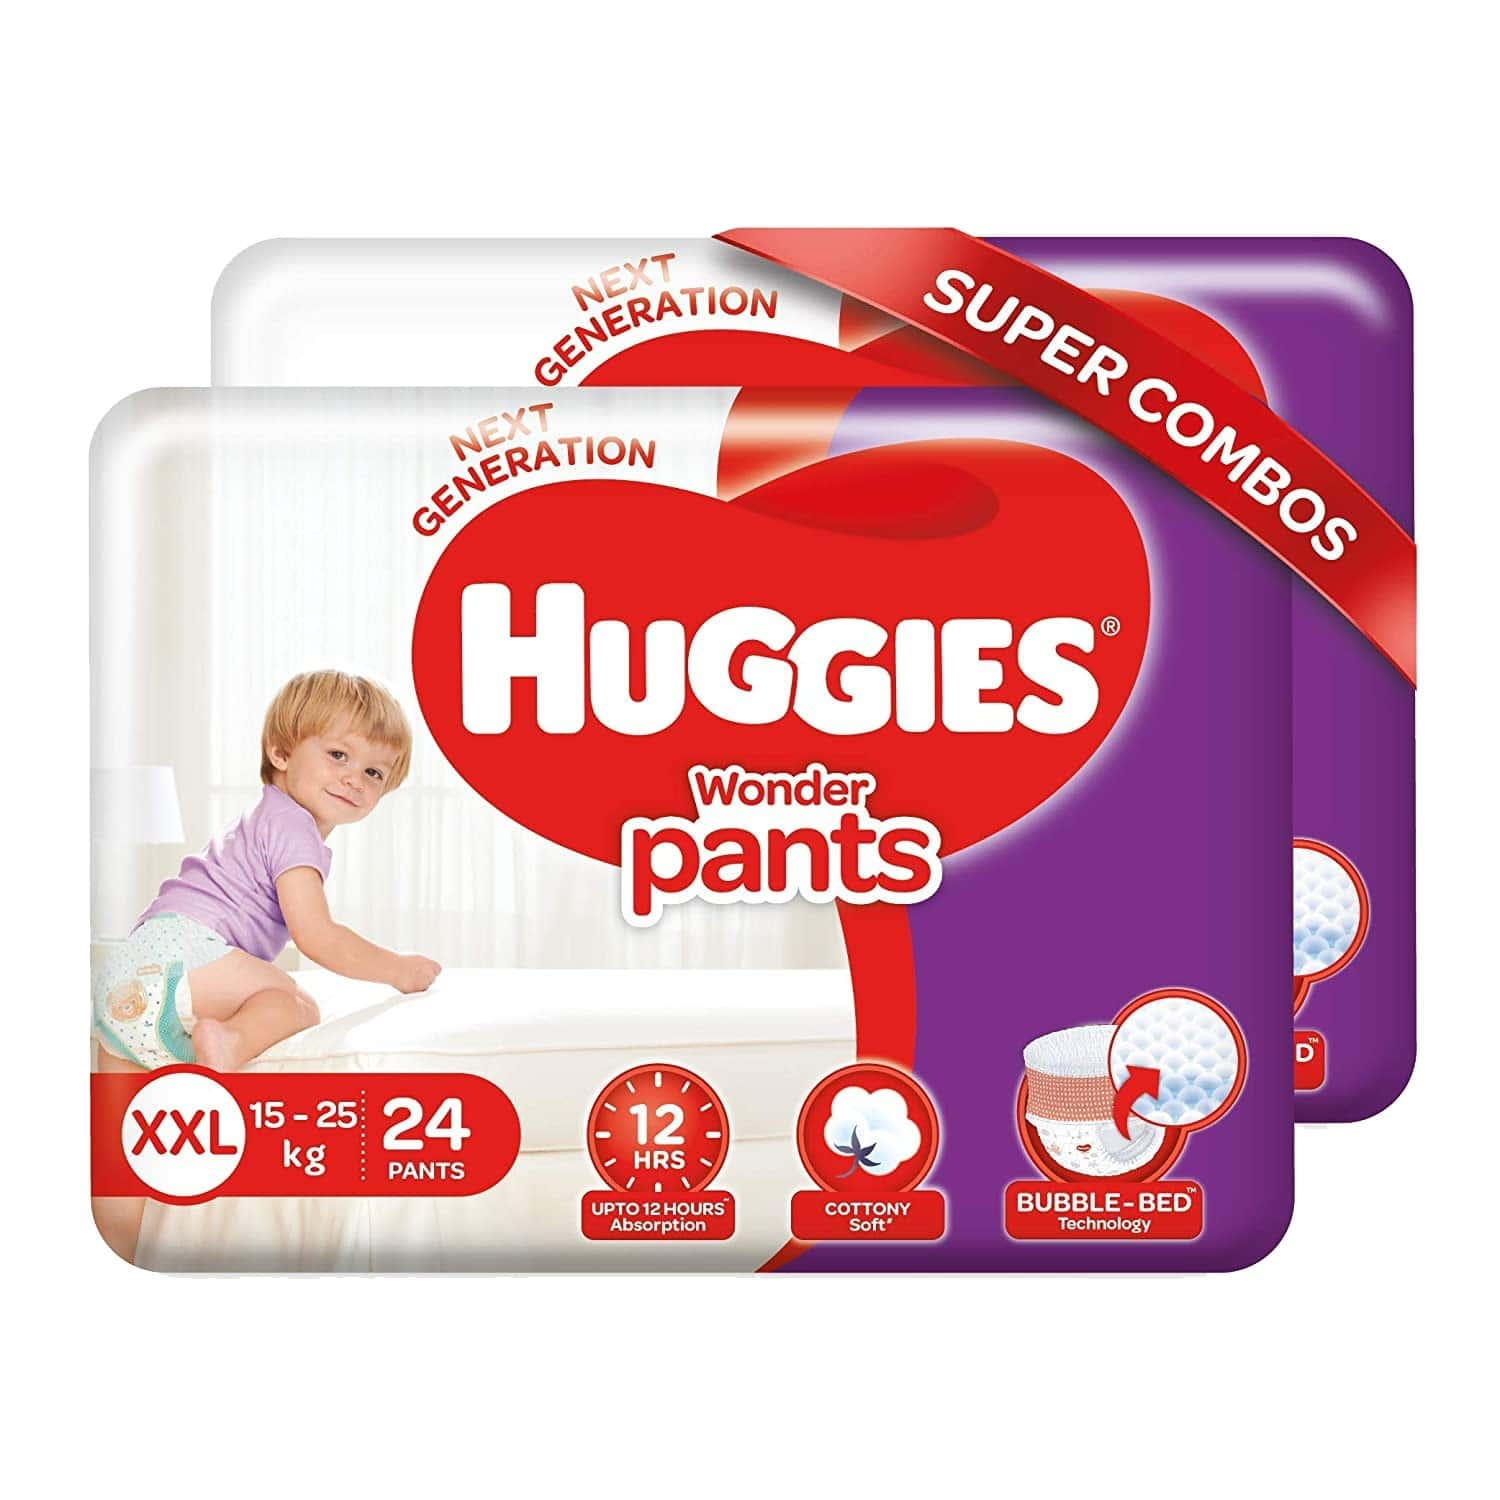 Huggies Wonder Pants Double Extra Large Size Diapers Combo Pack Of 2, 24 Counts Per Pack (48 Count)